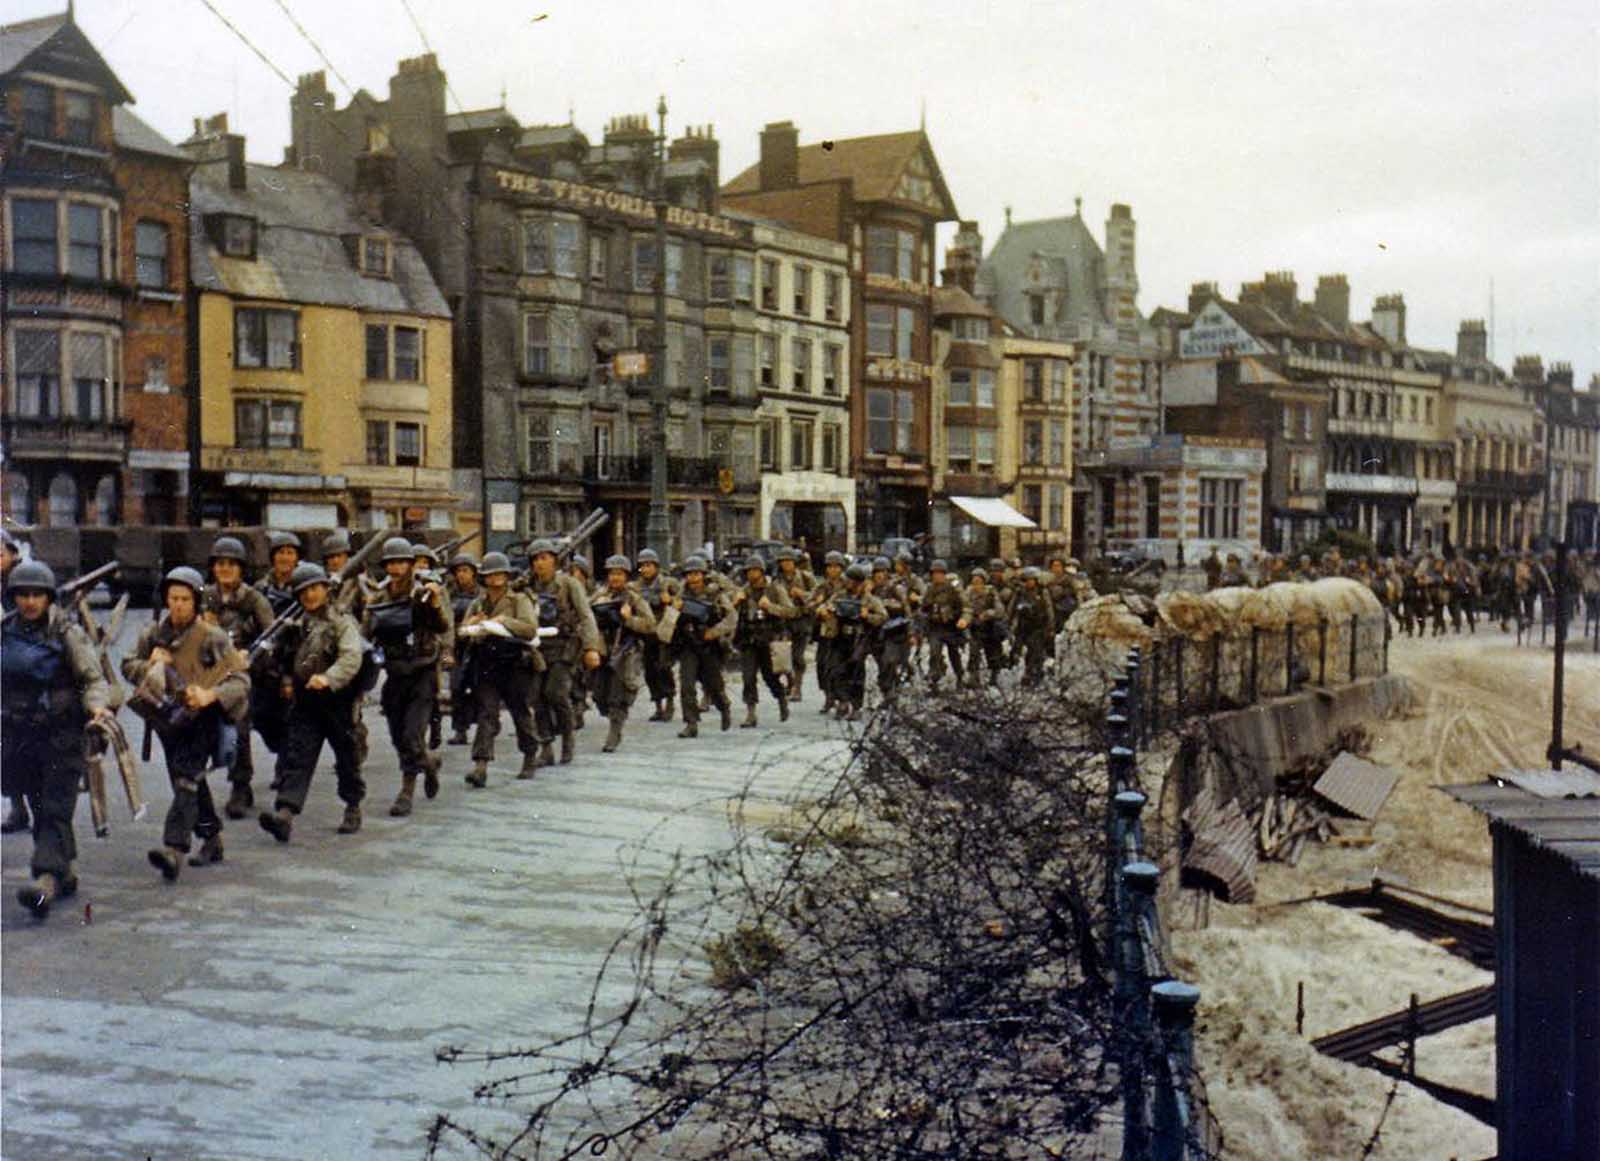 American troops march through the streets of a British port town on their way to the docks where they will be loaded into landing craft for the D-Day assault in June of 1944.